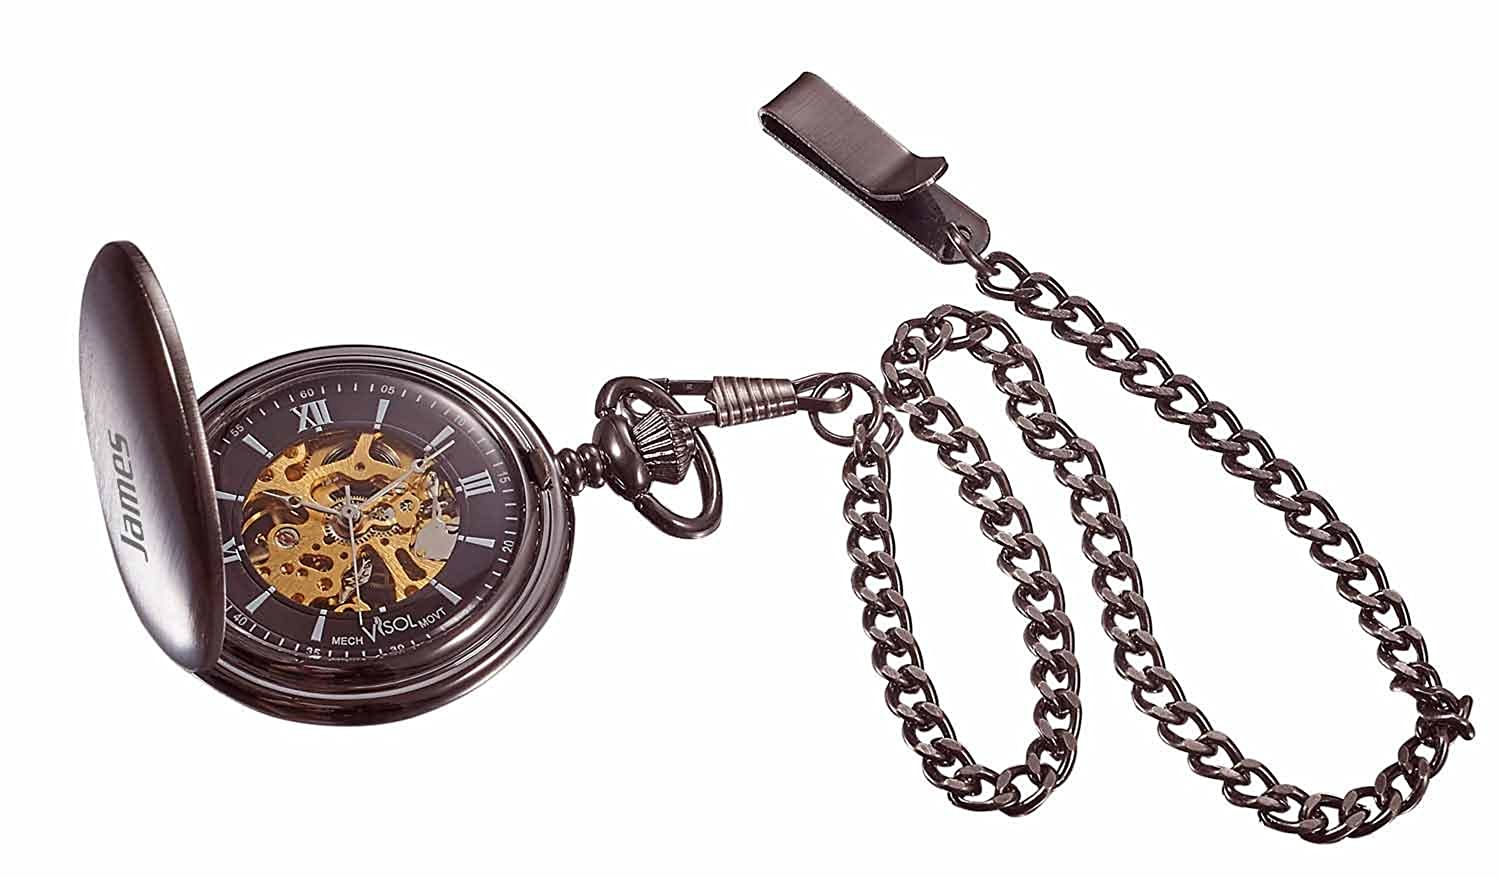 Personalized Visol Mechanical Pocket Watch with Free Engraving